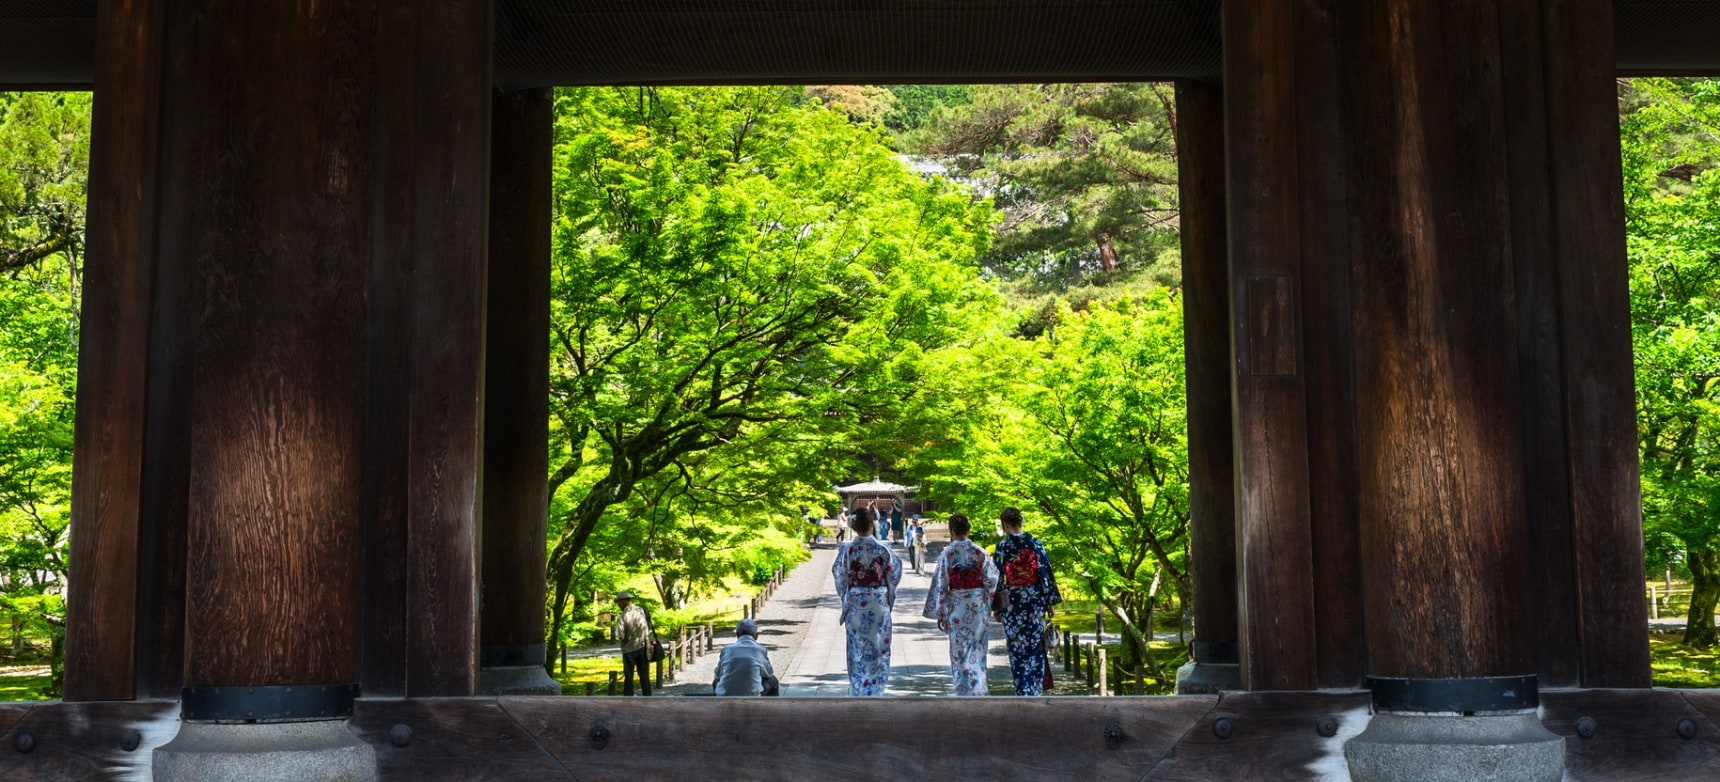 48 Hours in Kyoto on a Budget